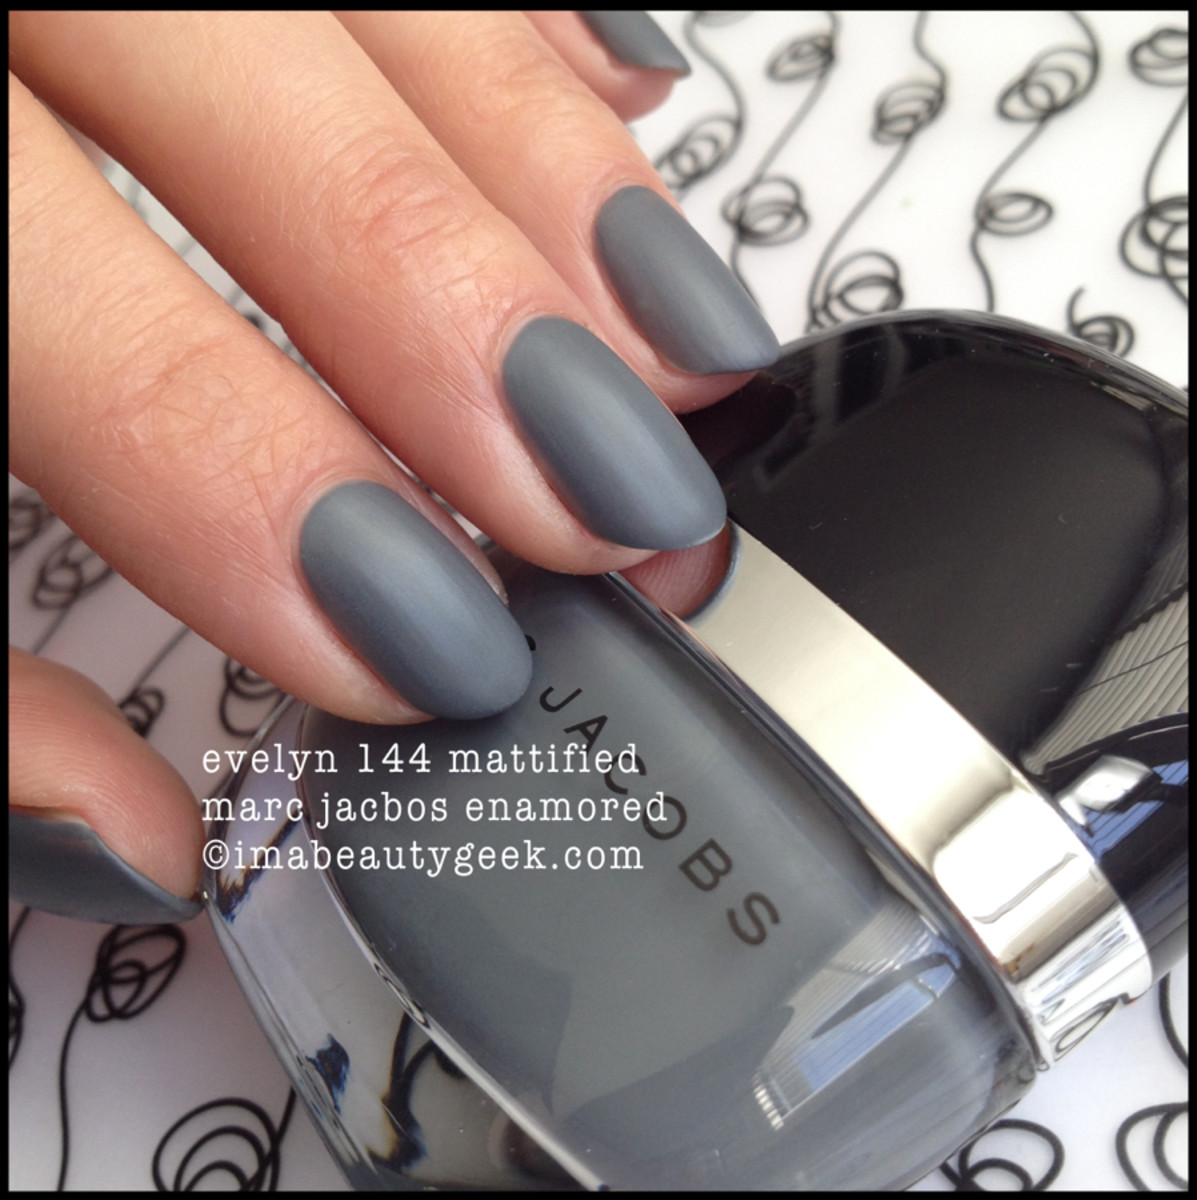 Marc Jacobs Evelyn 144 Mattified Nail Polish